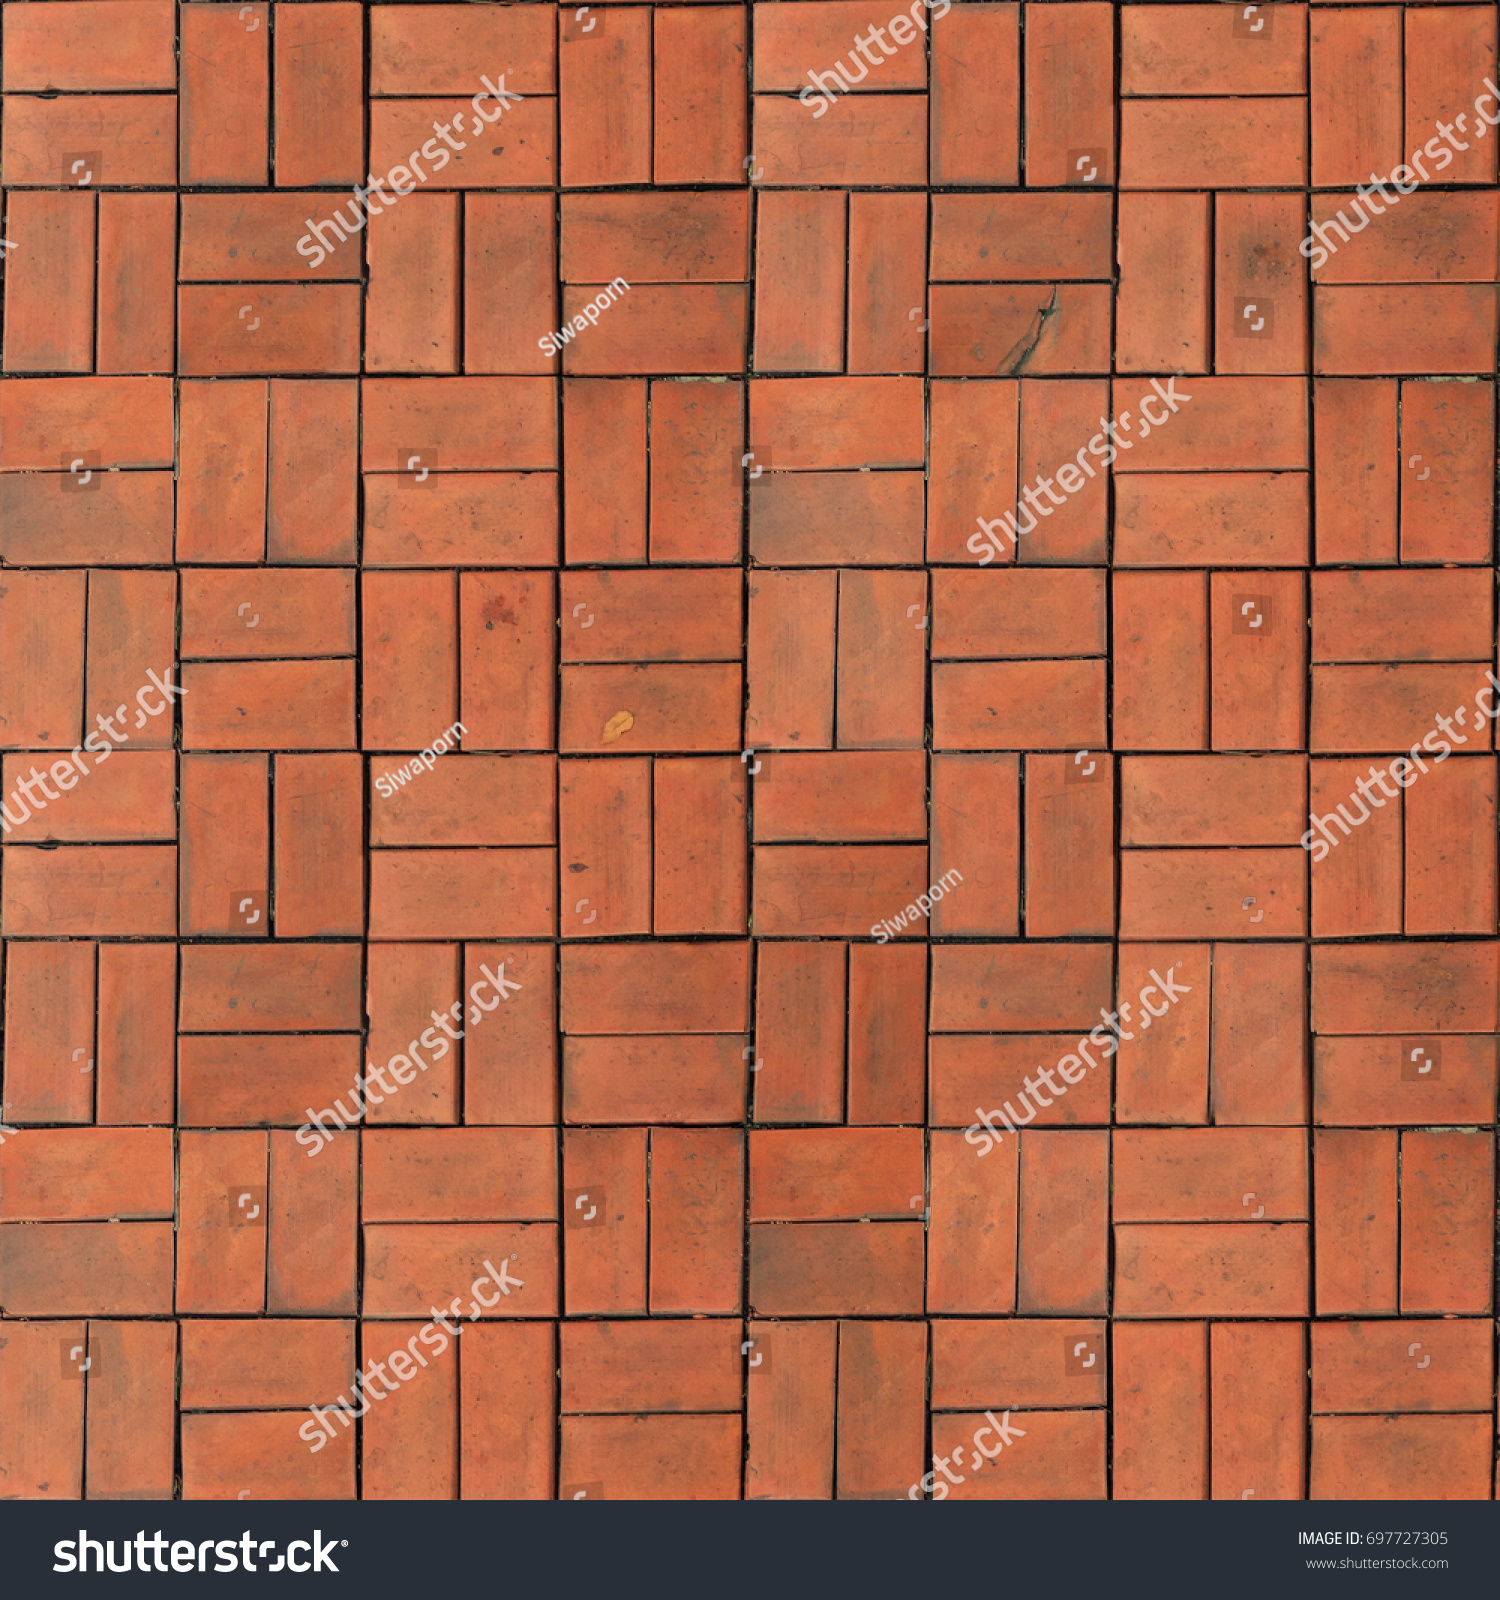 Red brown rectangle shape clay tile stock photo 697727305 red brown rectangle shape clay tile floor pattern brick pavement background dailygadgetfo Gallery